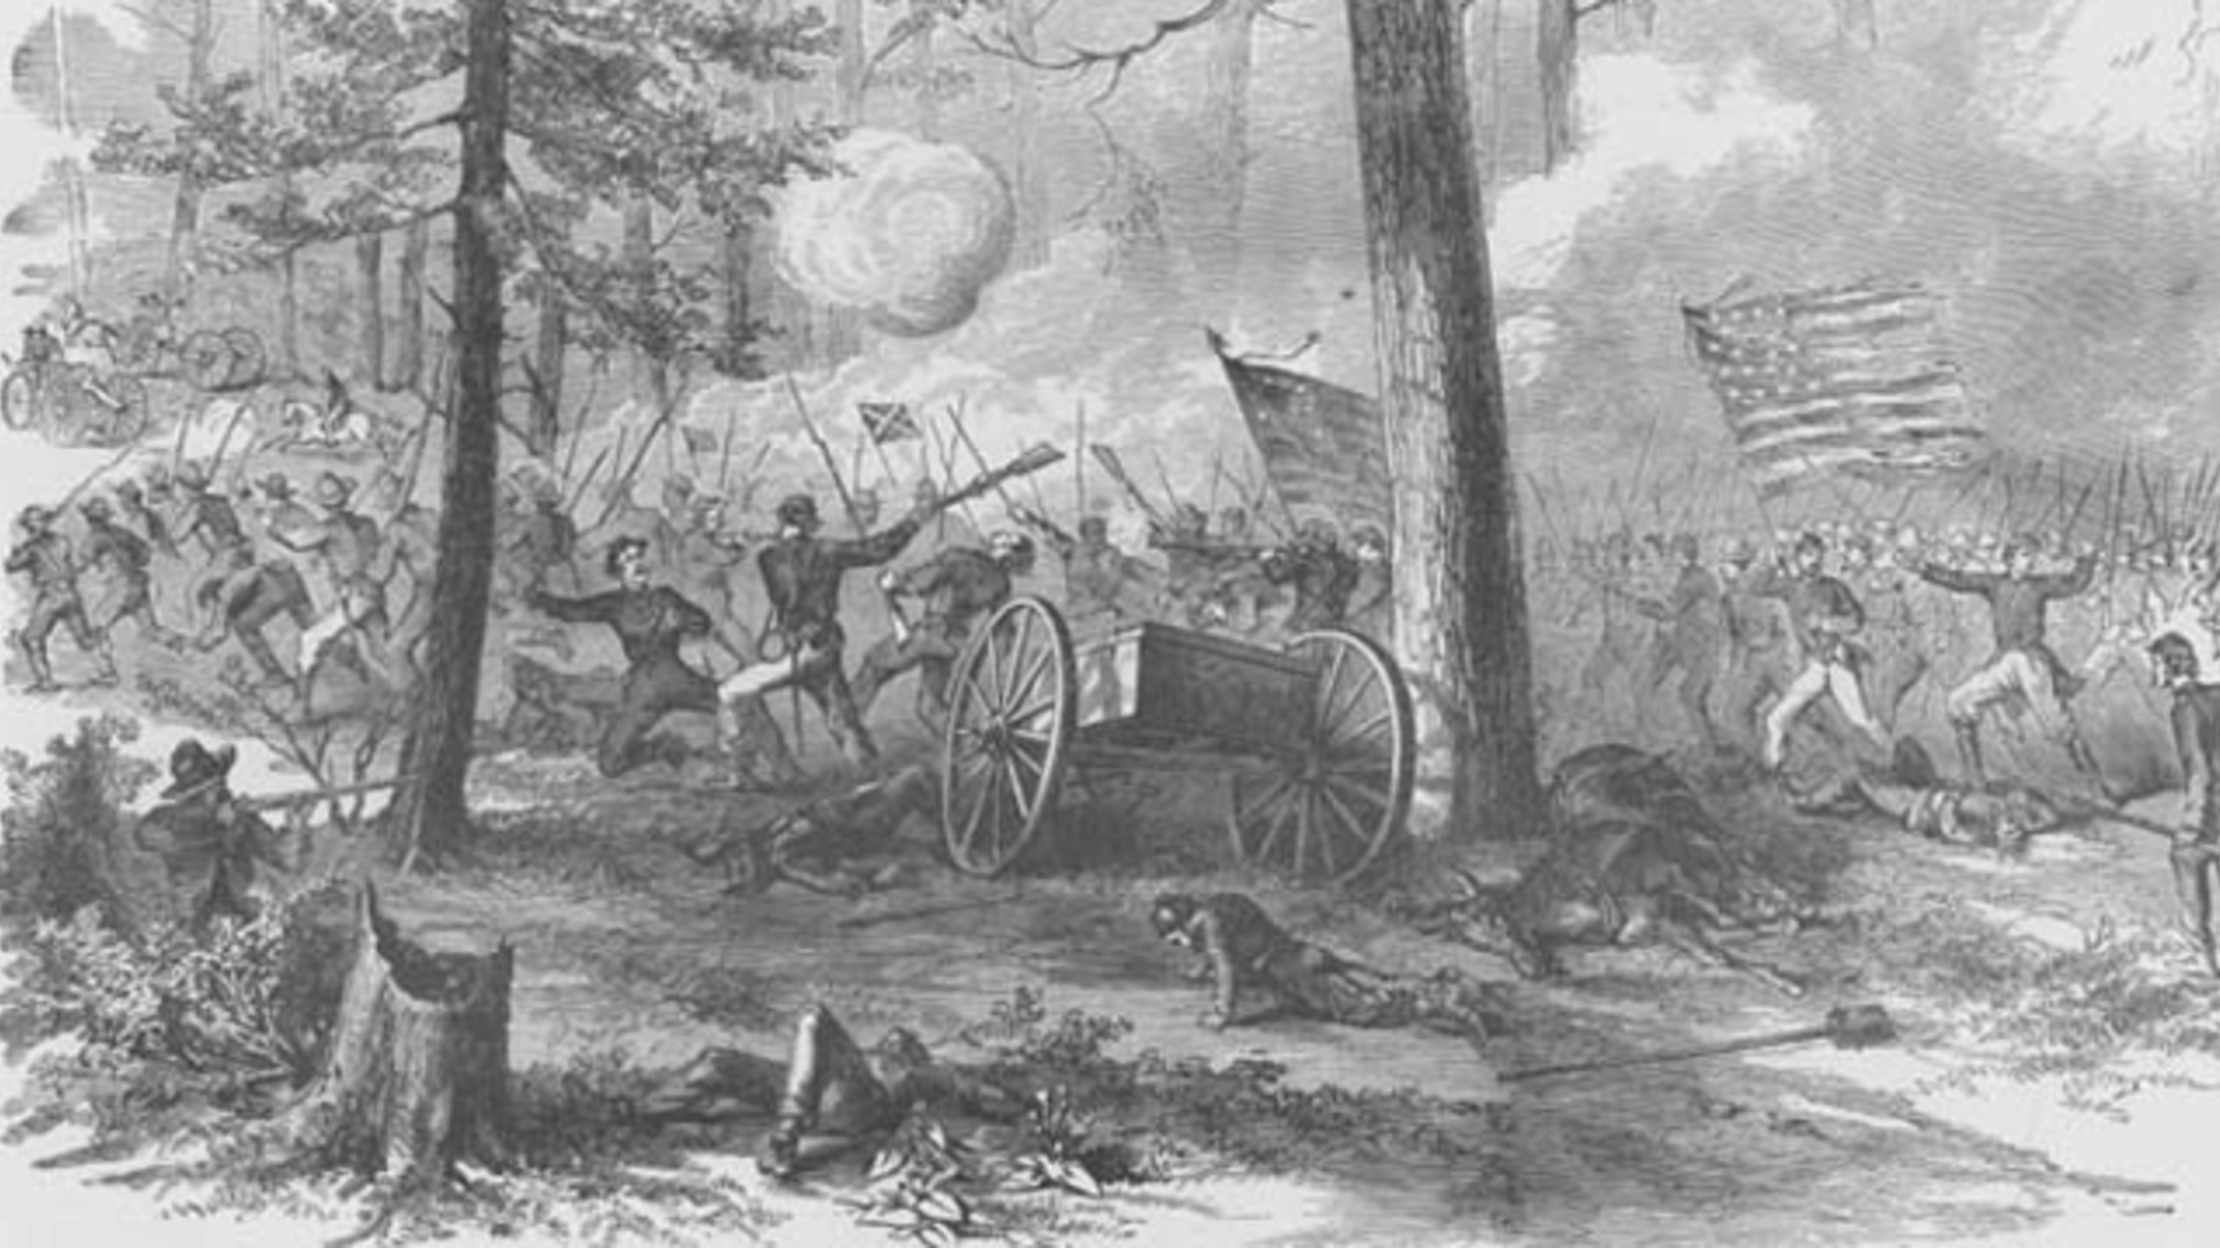 Moore's Historical Guide To The Battle Of Bentonville